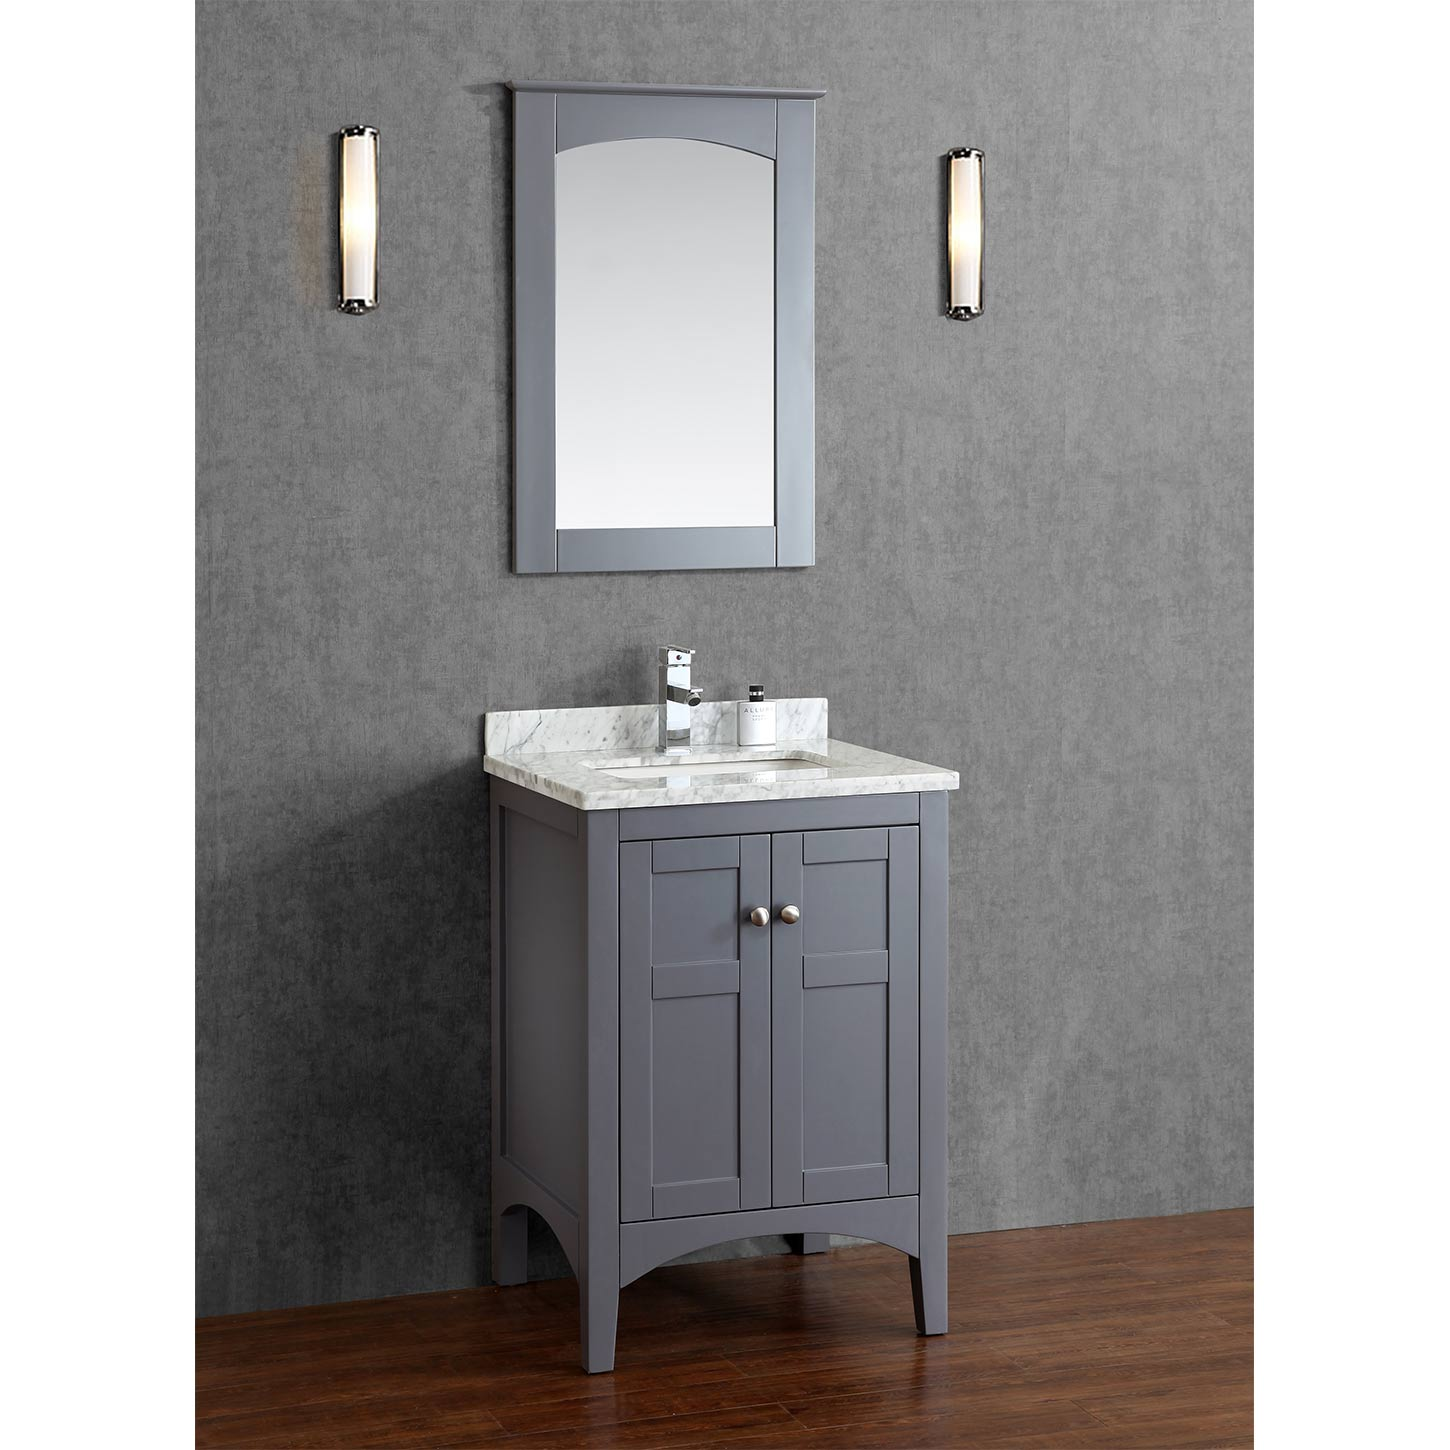 buy martin 24 inch solid wood single bathroom vanity in charcoal grey